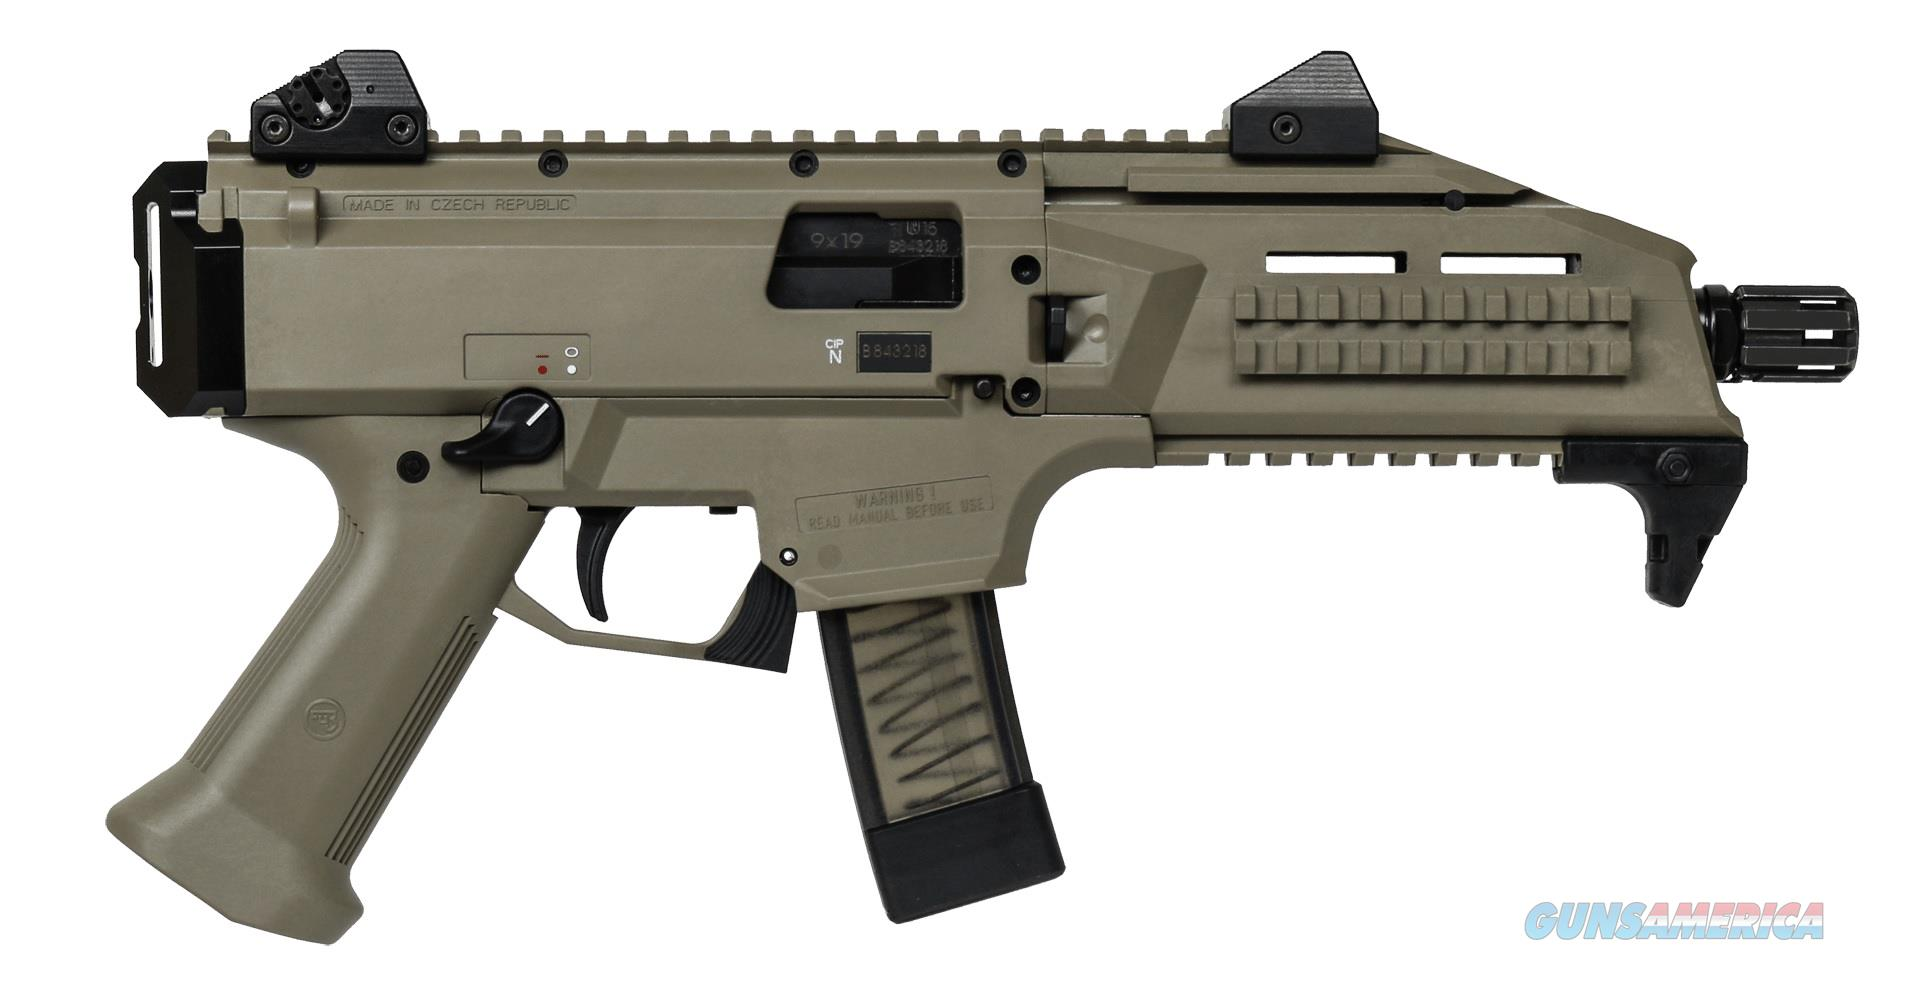 CZ-USA Scorpion EVO 3 S1 Pistol FDE 9mm Threaded 91352   Guns > Pistols > CZ Pistols